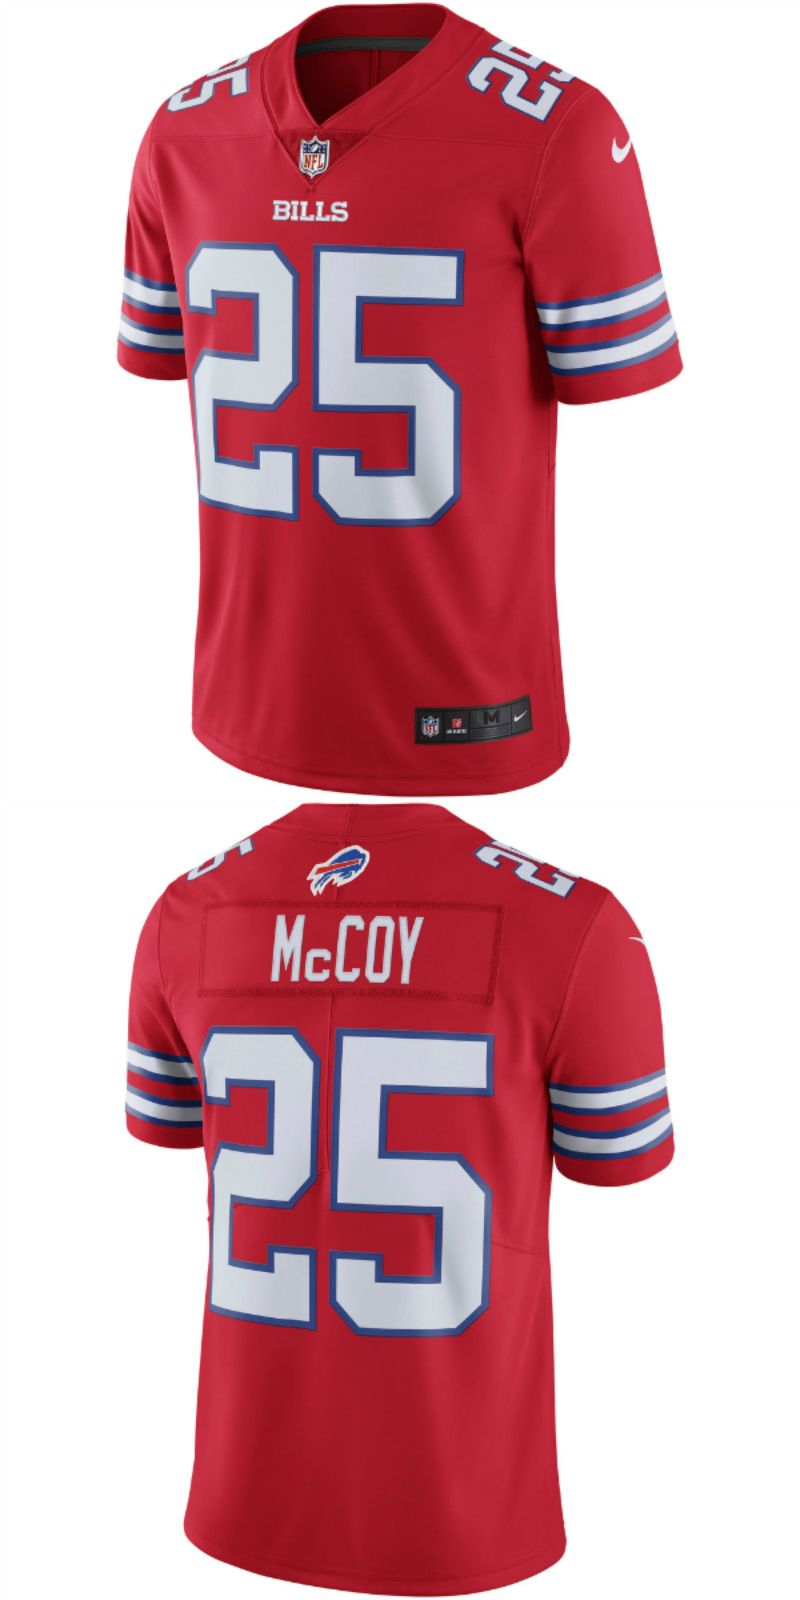 online store 70050 a136a LeSean McCoy Buffalo Bills Nike Vapor Untouchable Color Rush ...